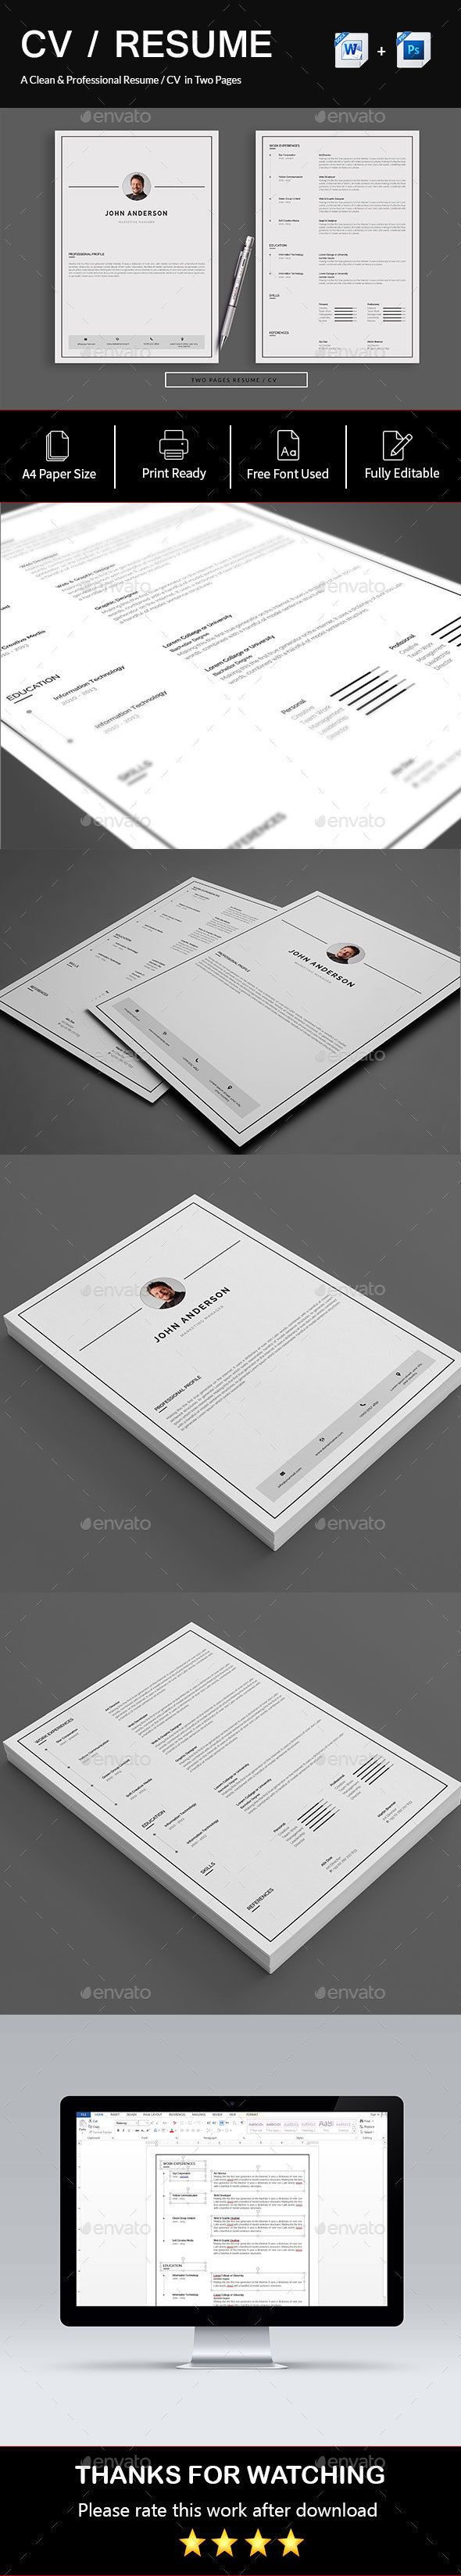 Resume/CV (2 Page) #a4 #cv doc  • Download here → https://graphicriver.net/item/resumecv-2-page/21316552?ref=pxcr